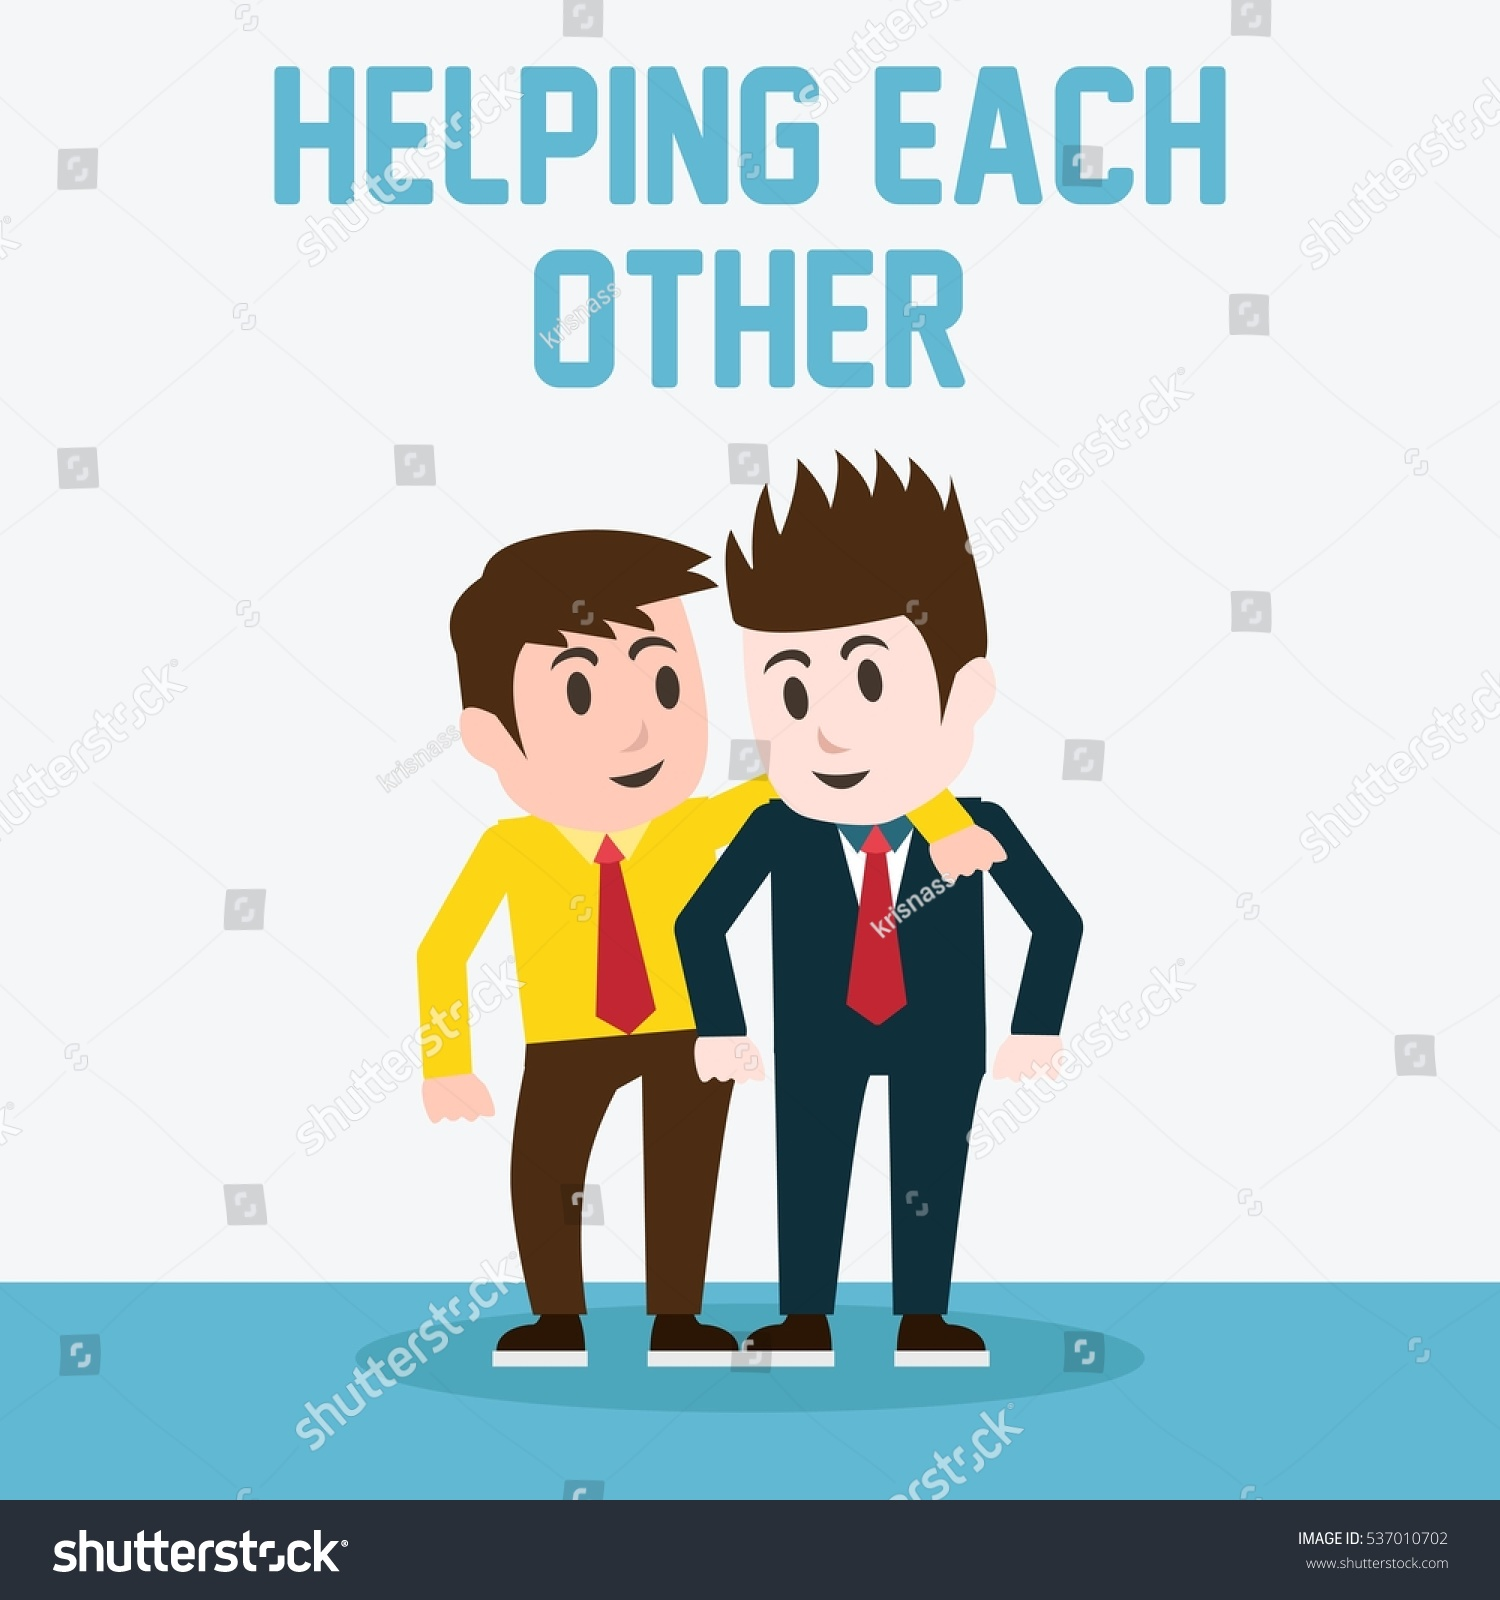 Helping Each Other: Helping Each Other Poster Stock Vector 537010702